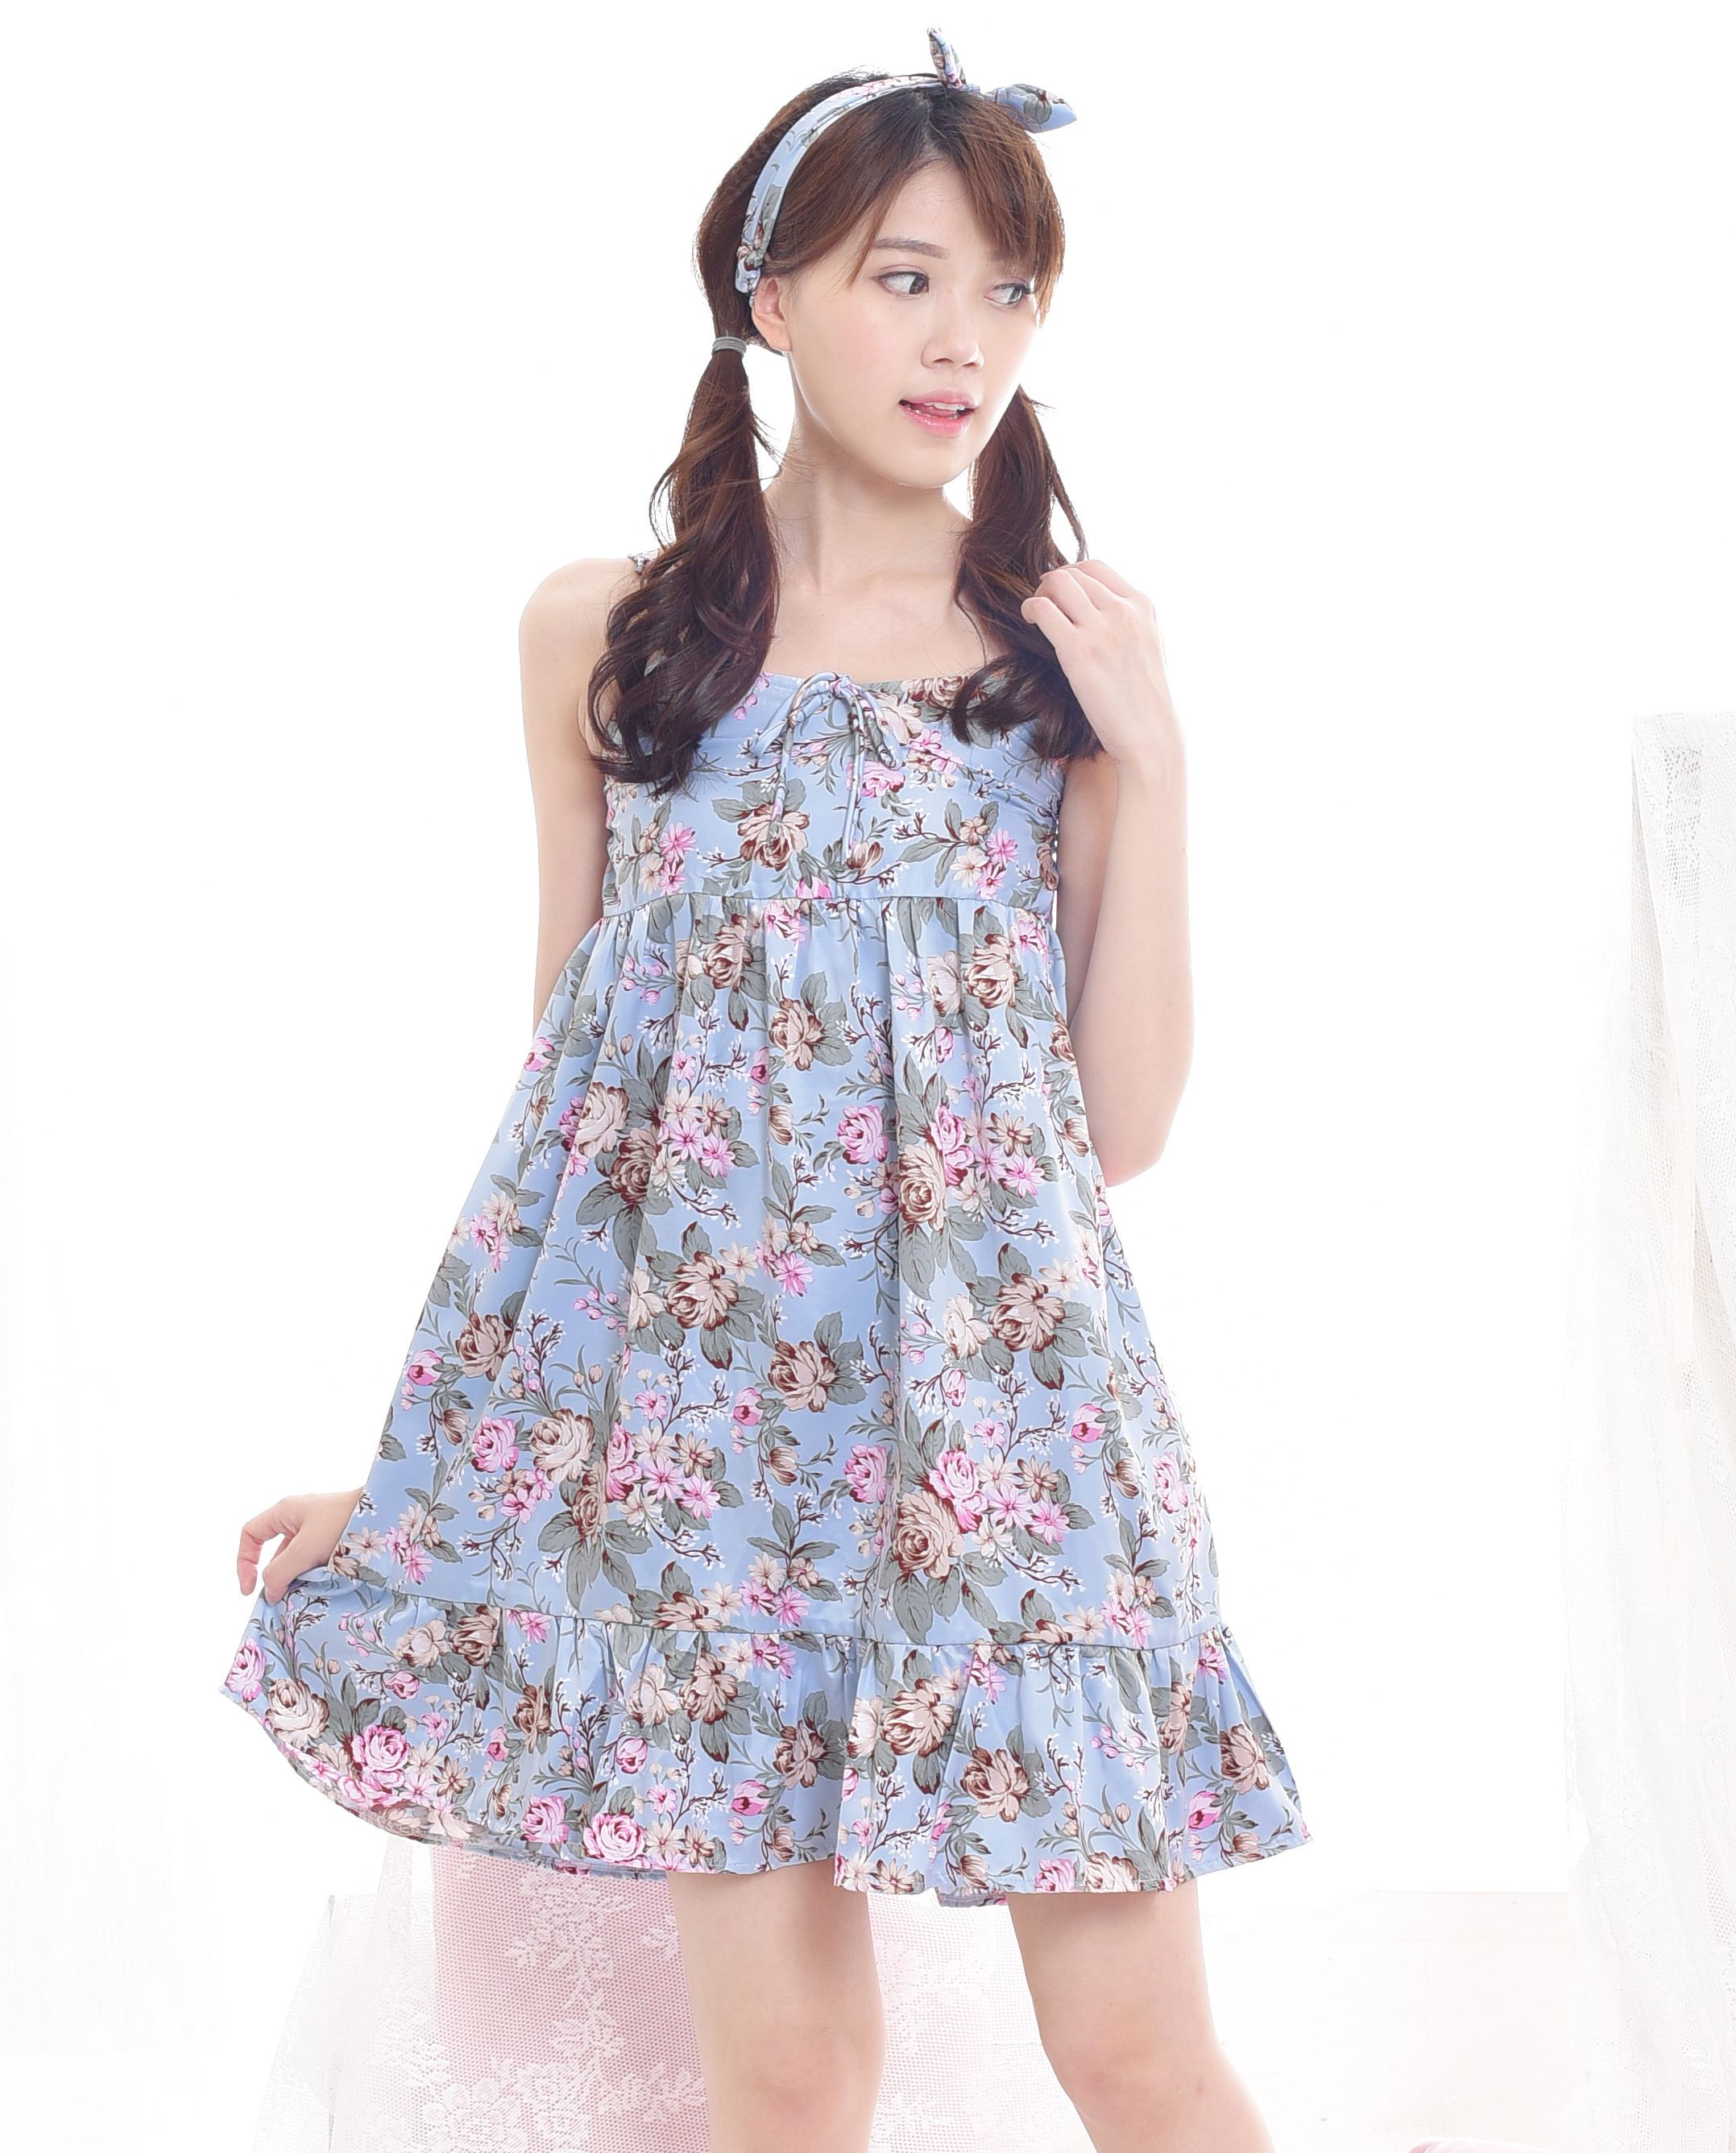 7c37298df1 Shop cute woman floral babydoll dress in baby blue color. Perfect for  spring and summer. Jual dress babydoll floral dengan tali spaghetti.  kawaii   japanese ...